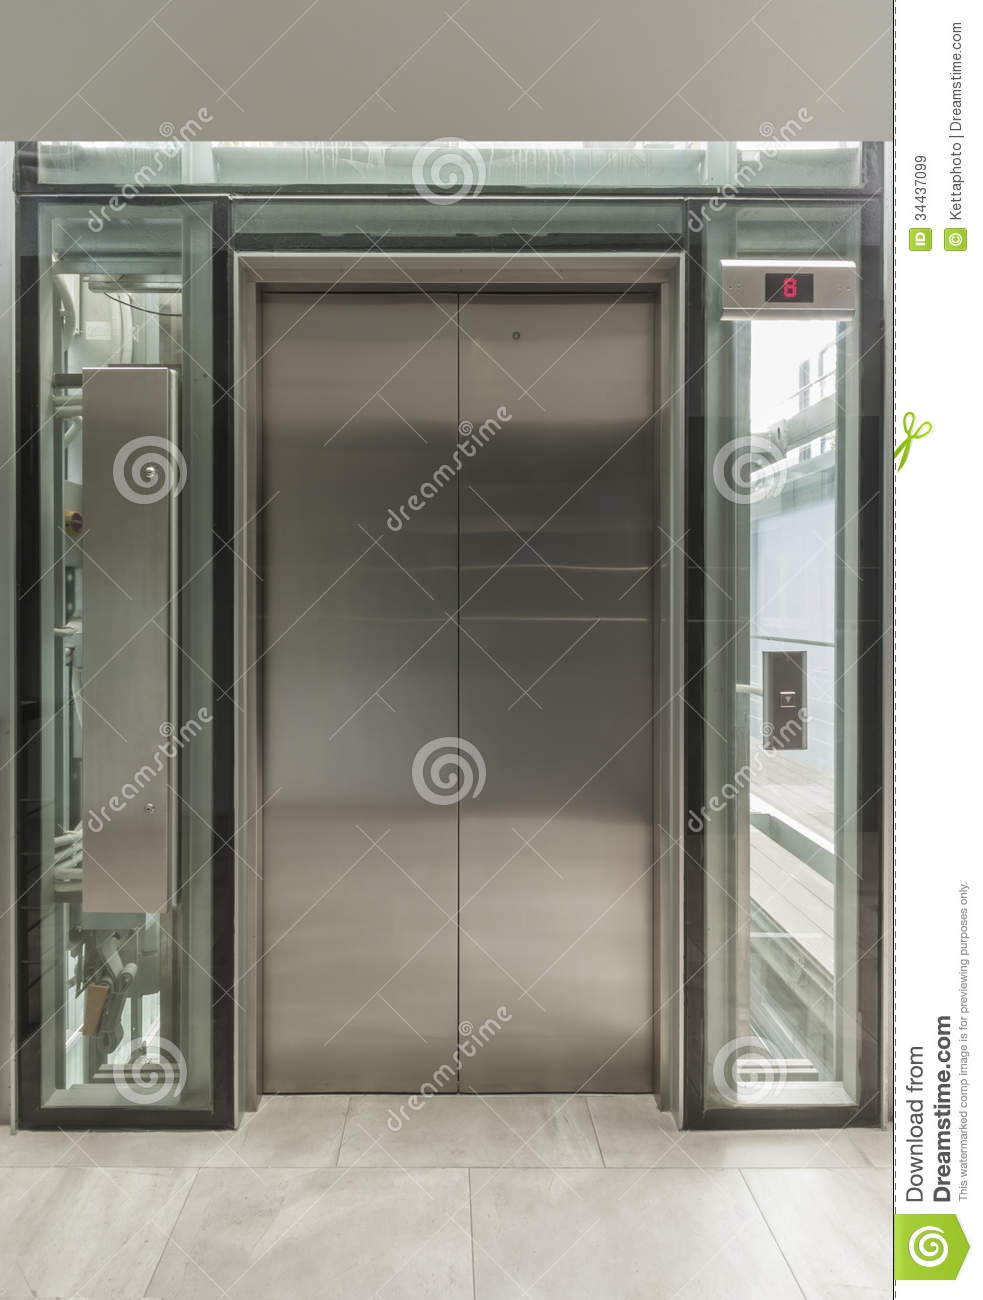 Glass Elevator Doors : Glass lift royalty free stock images image